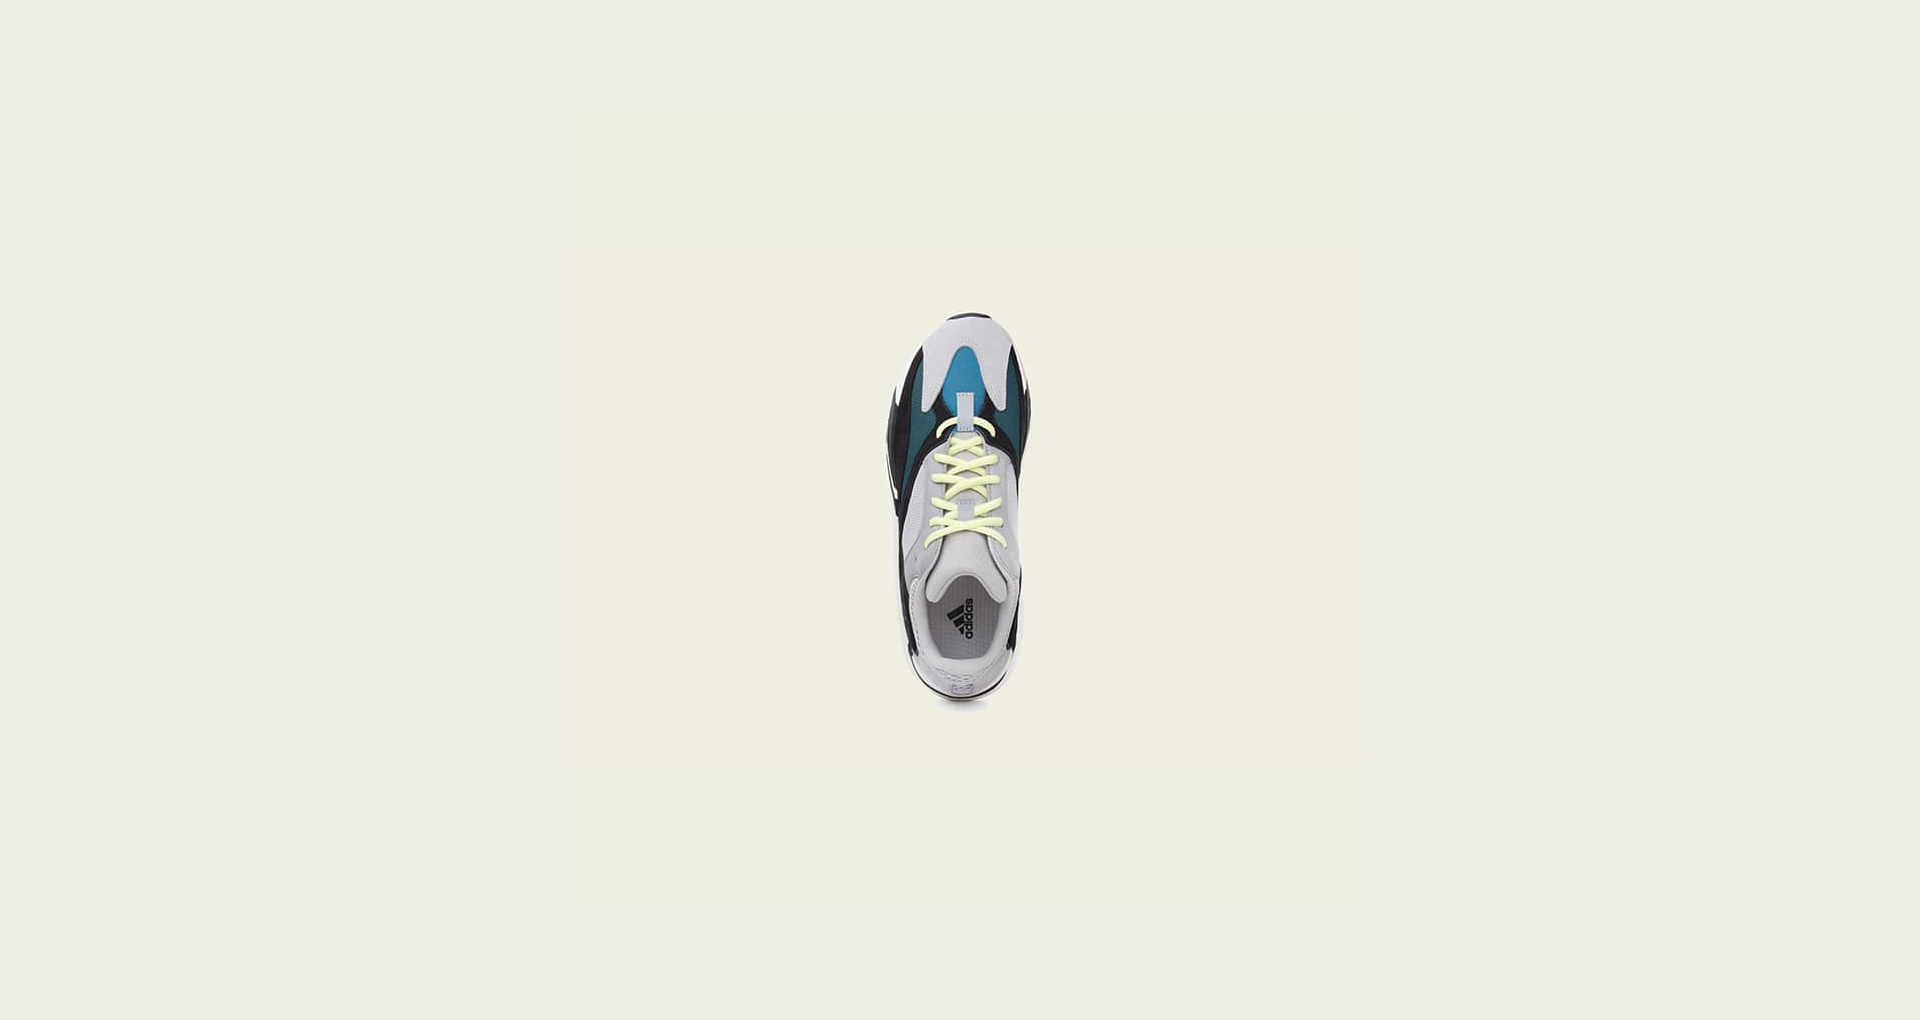 B75571 adidas YEEZY Boost 700 Wave Runner 3